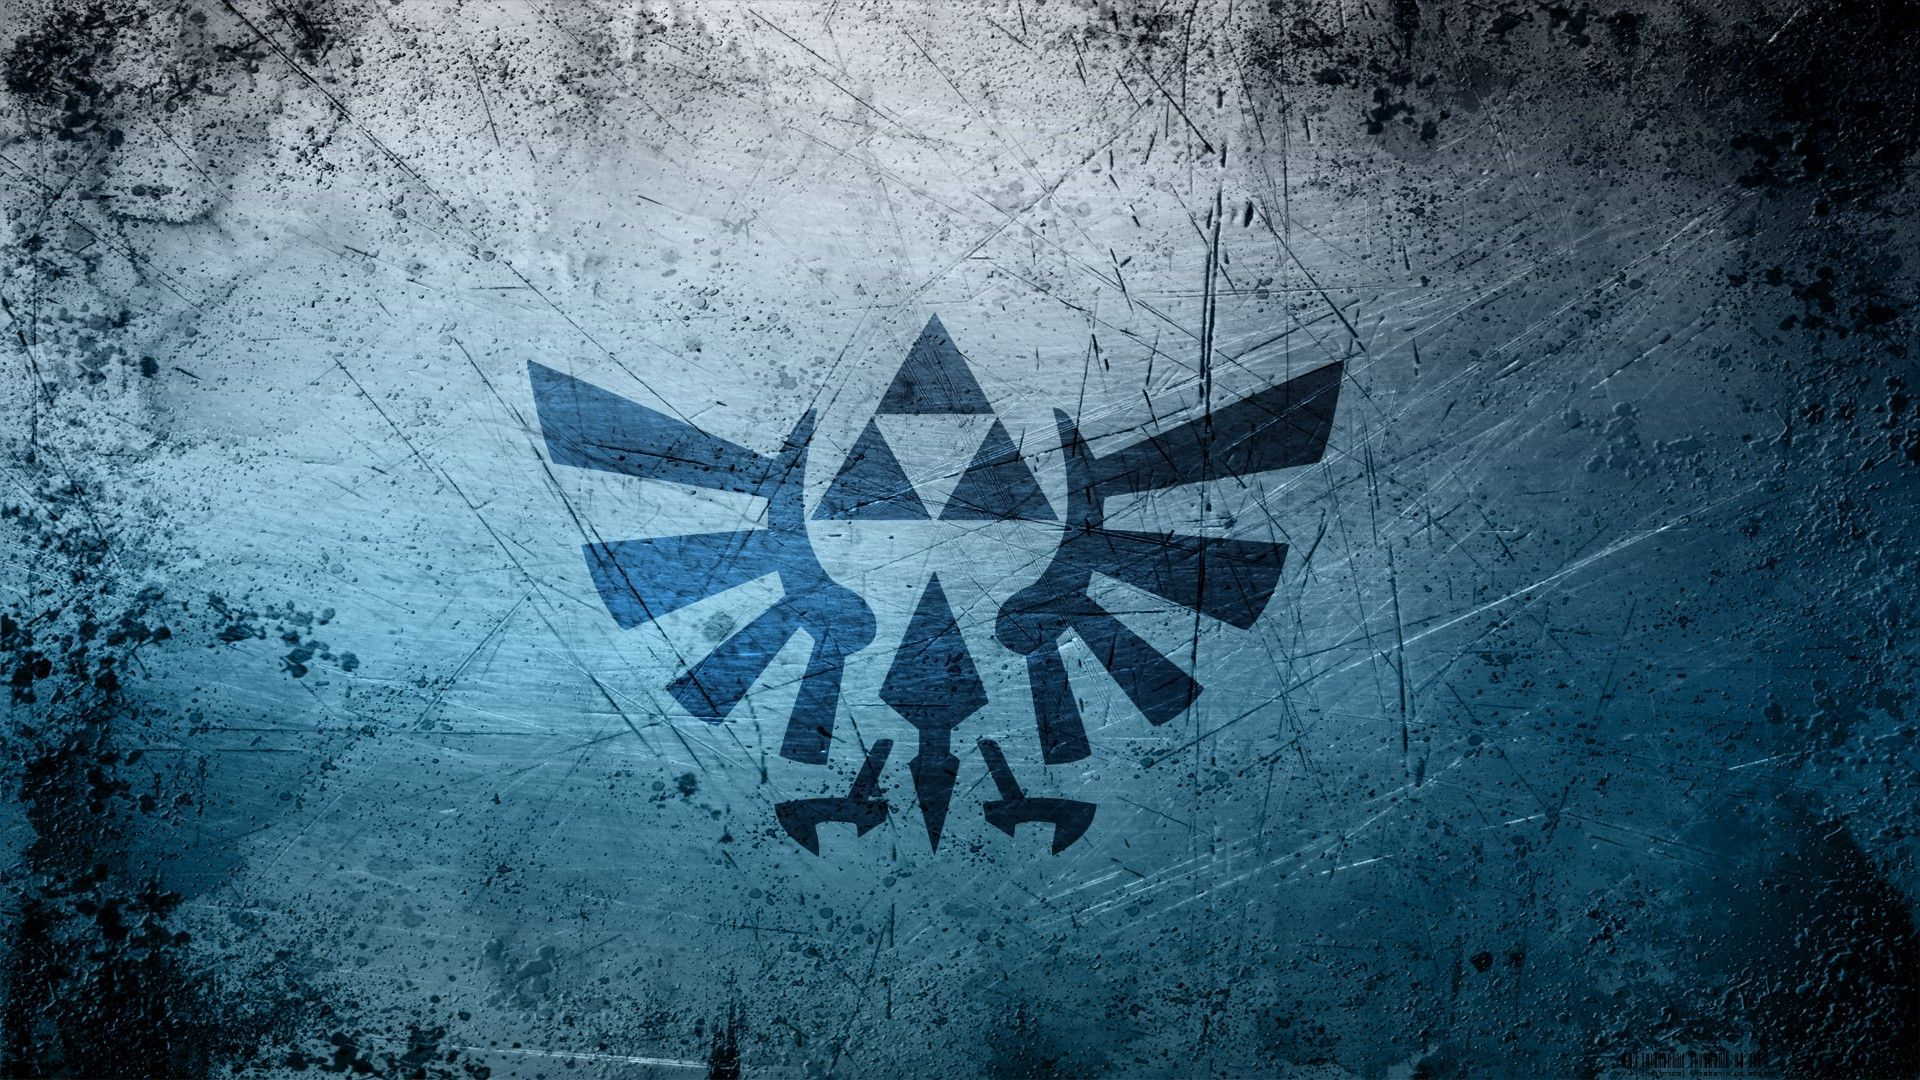 Zelda Wallpapers HD 1920x1080 1920x1080